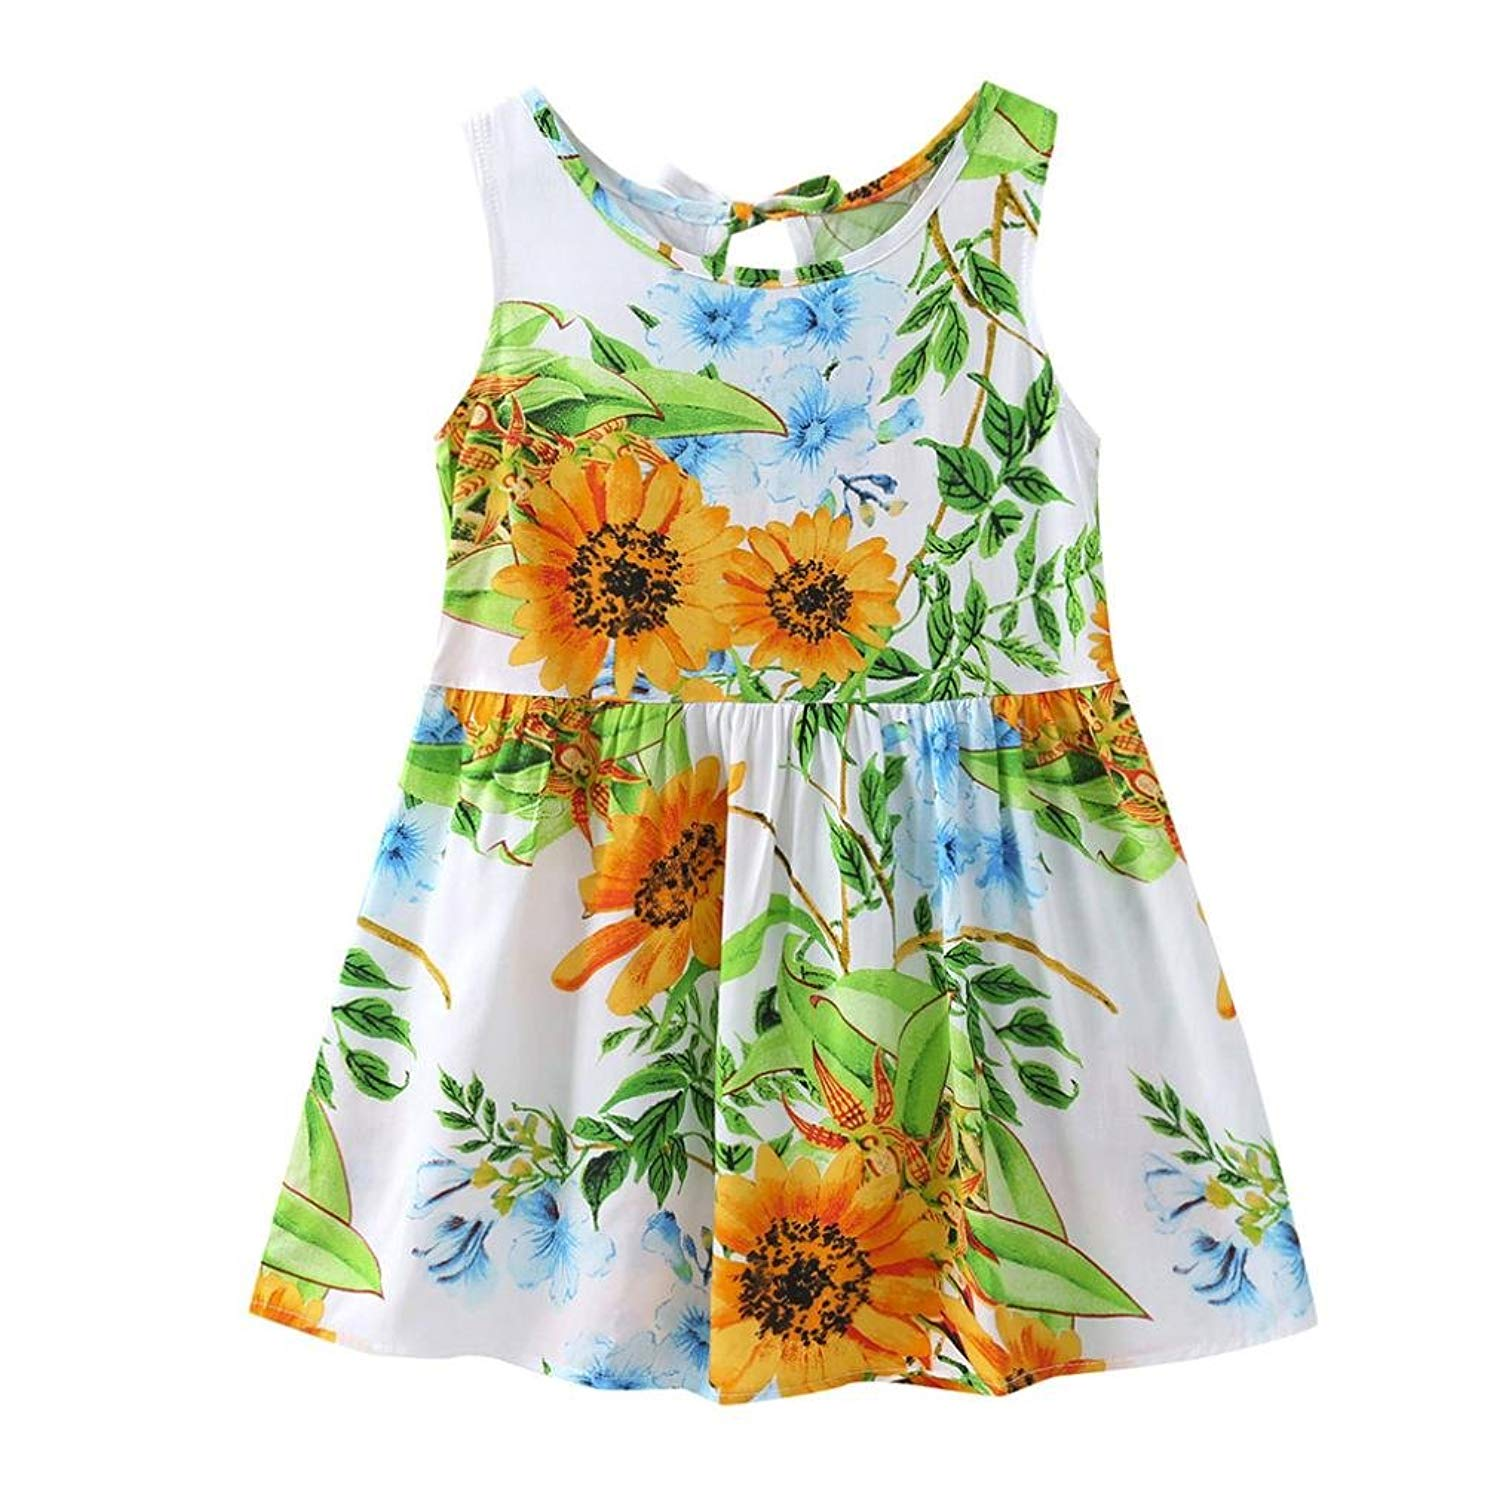 332b0f2c957b0 Get Quotations · TIFENNY Infant Baby Girls Kids Cartoon Floral Sundress  Clothes Sundress Cute Dresses,Clearance!